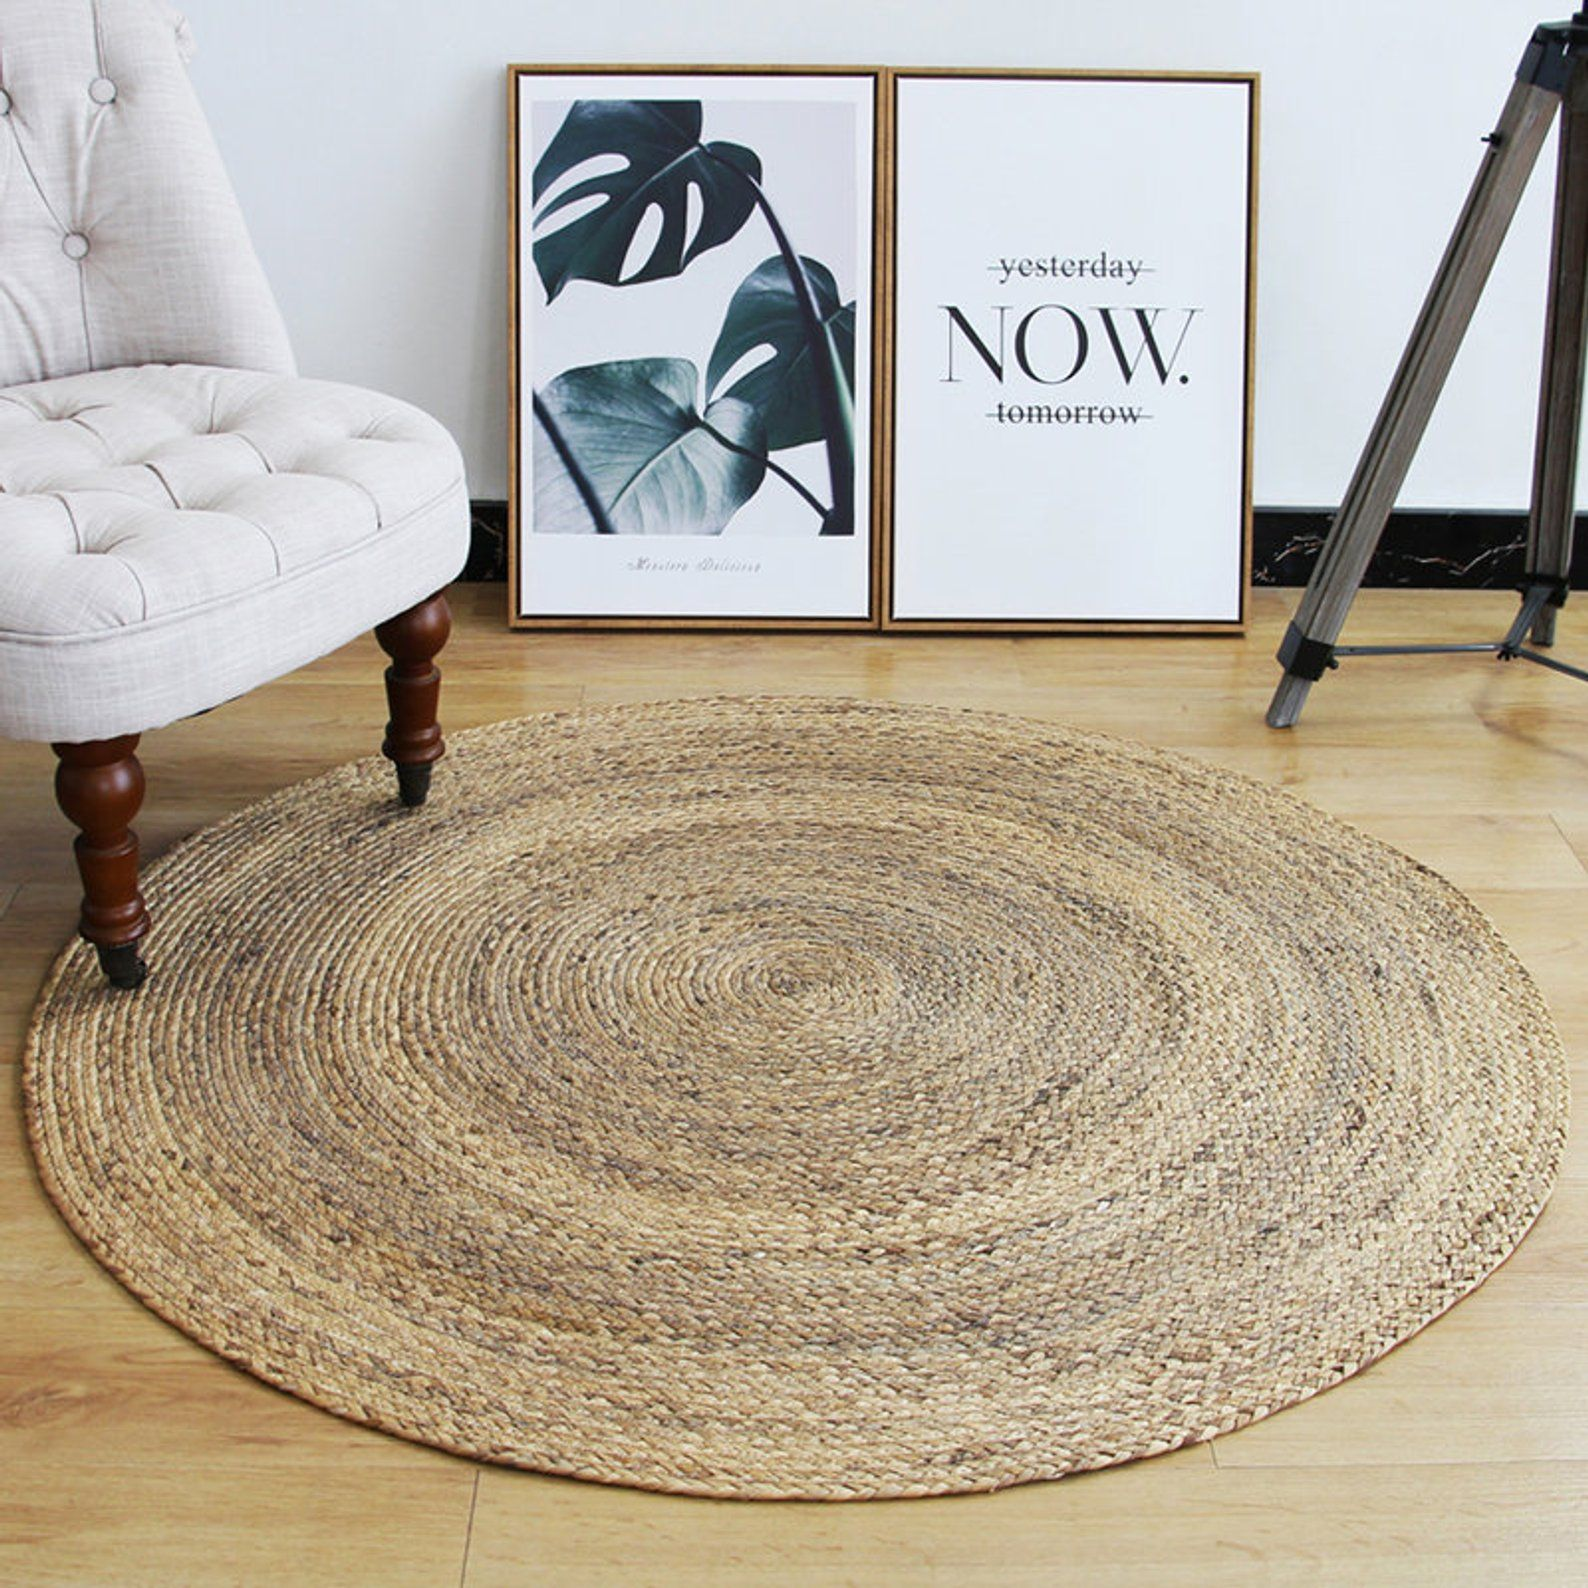 CUSTOM SIZE round brown woven straw floor mats and rugs